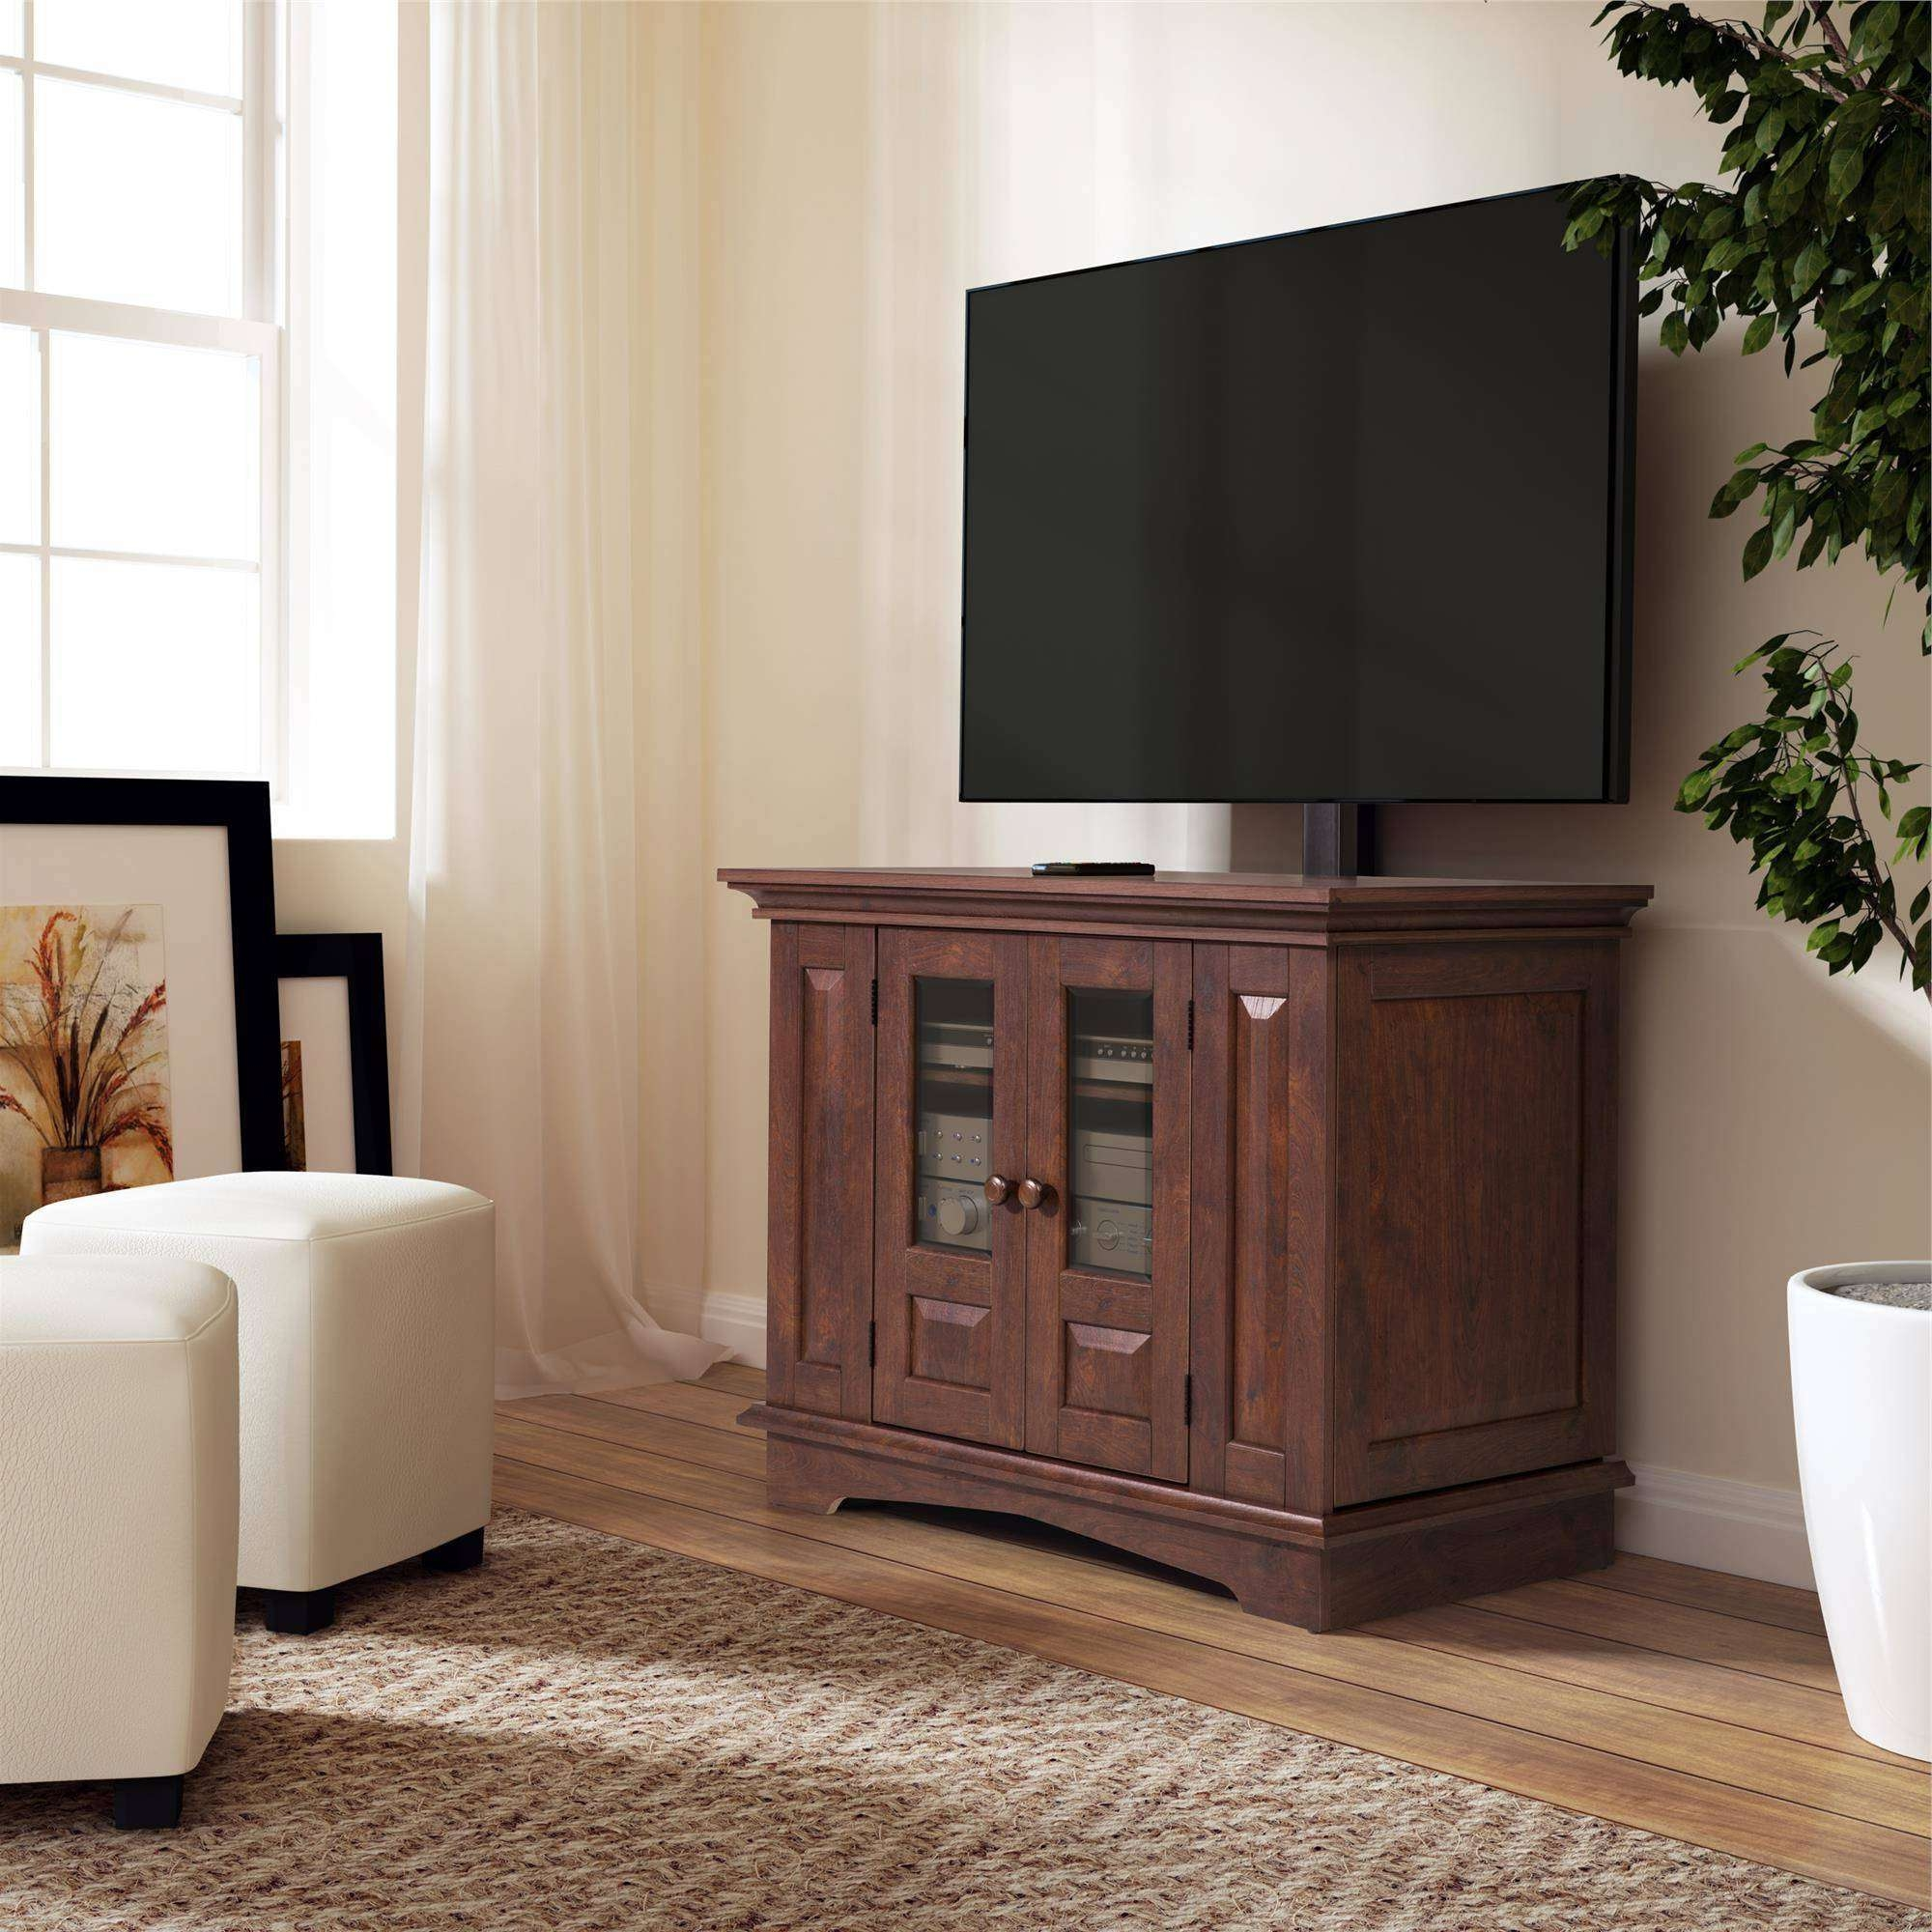 Tv Stand With Mount Tv Stands – Walmart Regarding Tv Stands 40 Inches Wide (View 14 of 15)